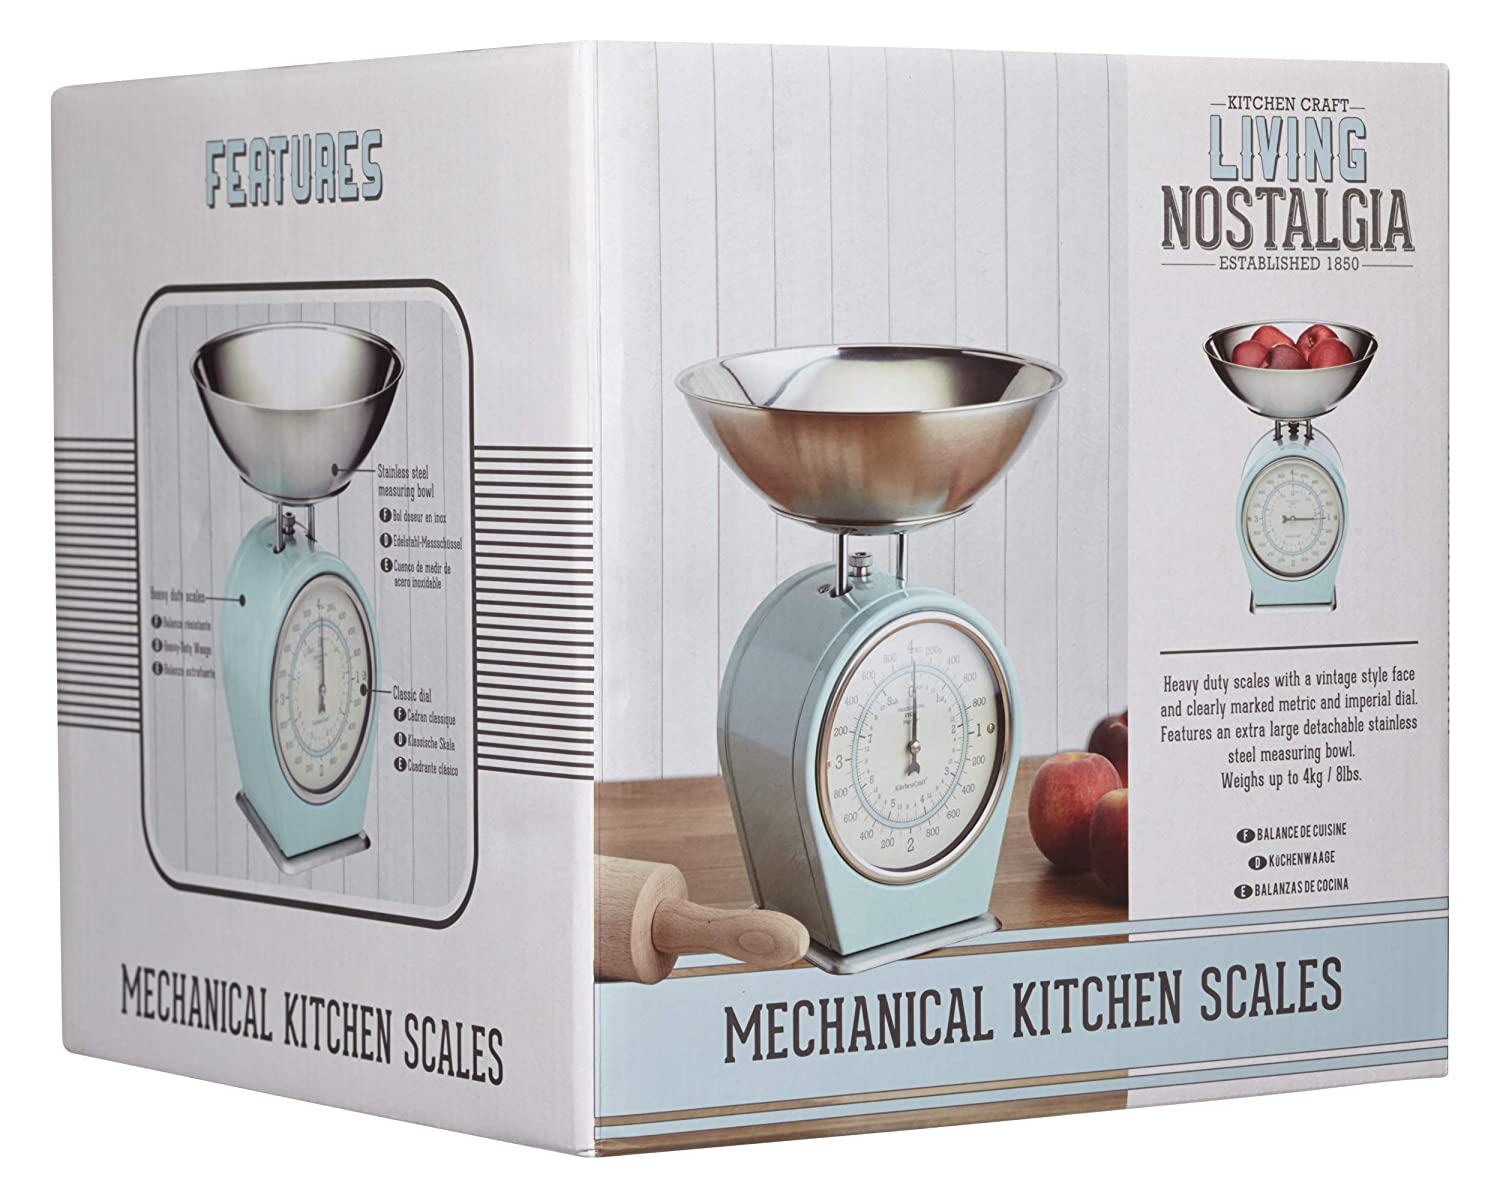 Amazon.com: Kitchencraft Living Nostalgia Mechanical Kitchen Scales, 4kg (8 Lbs) - Vintage: Kitchen & Dining